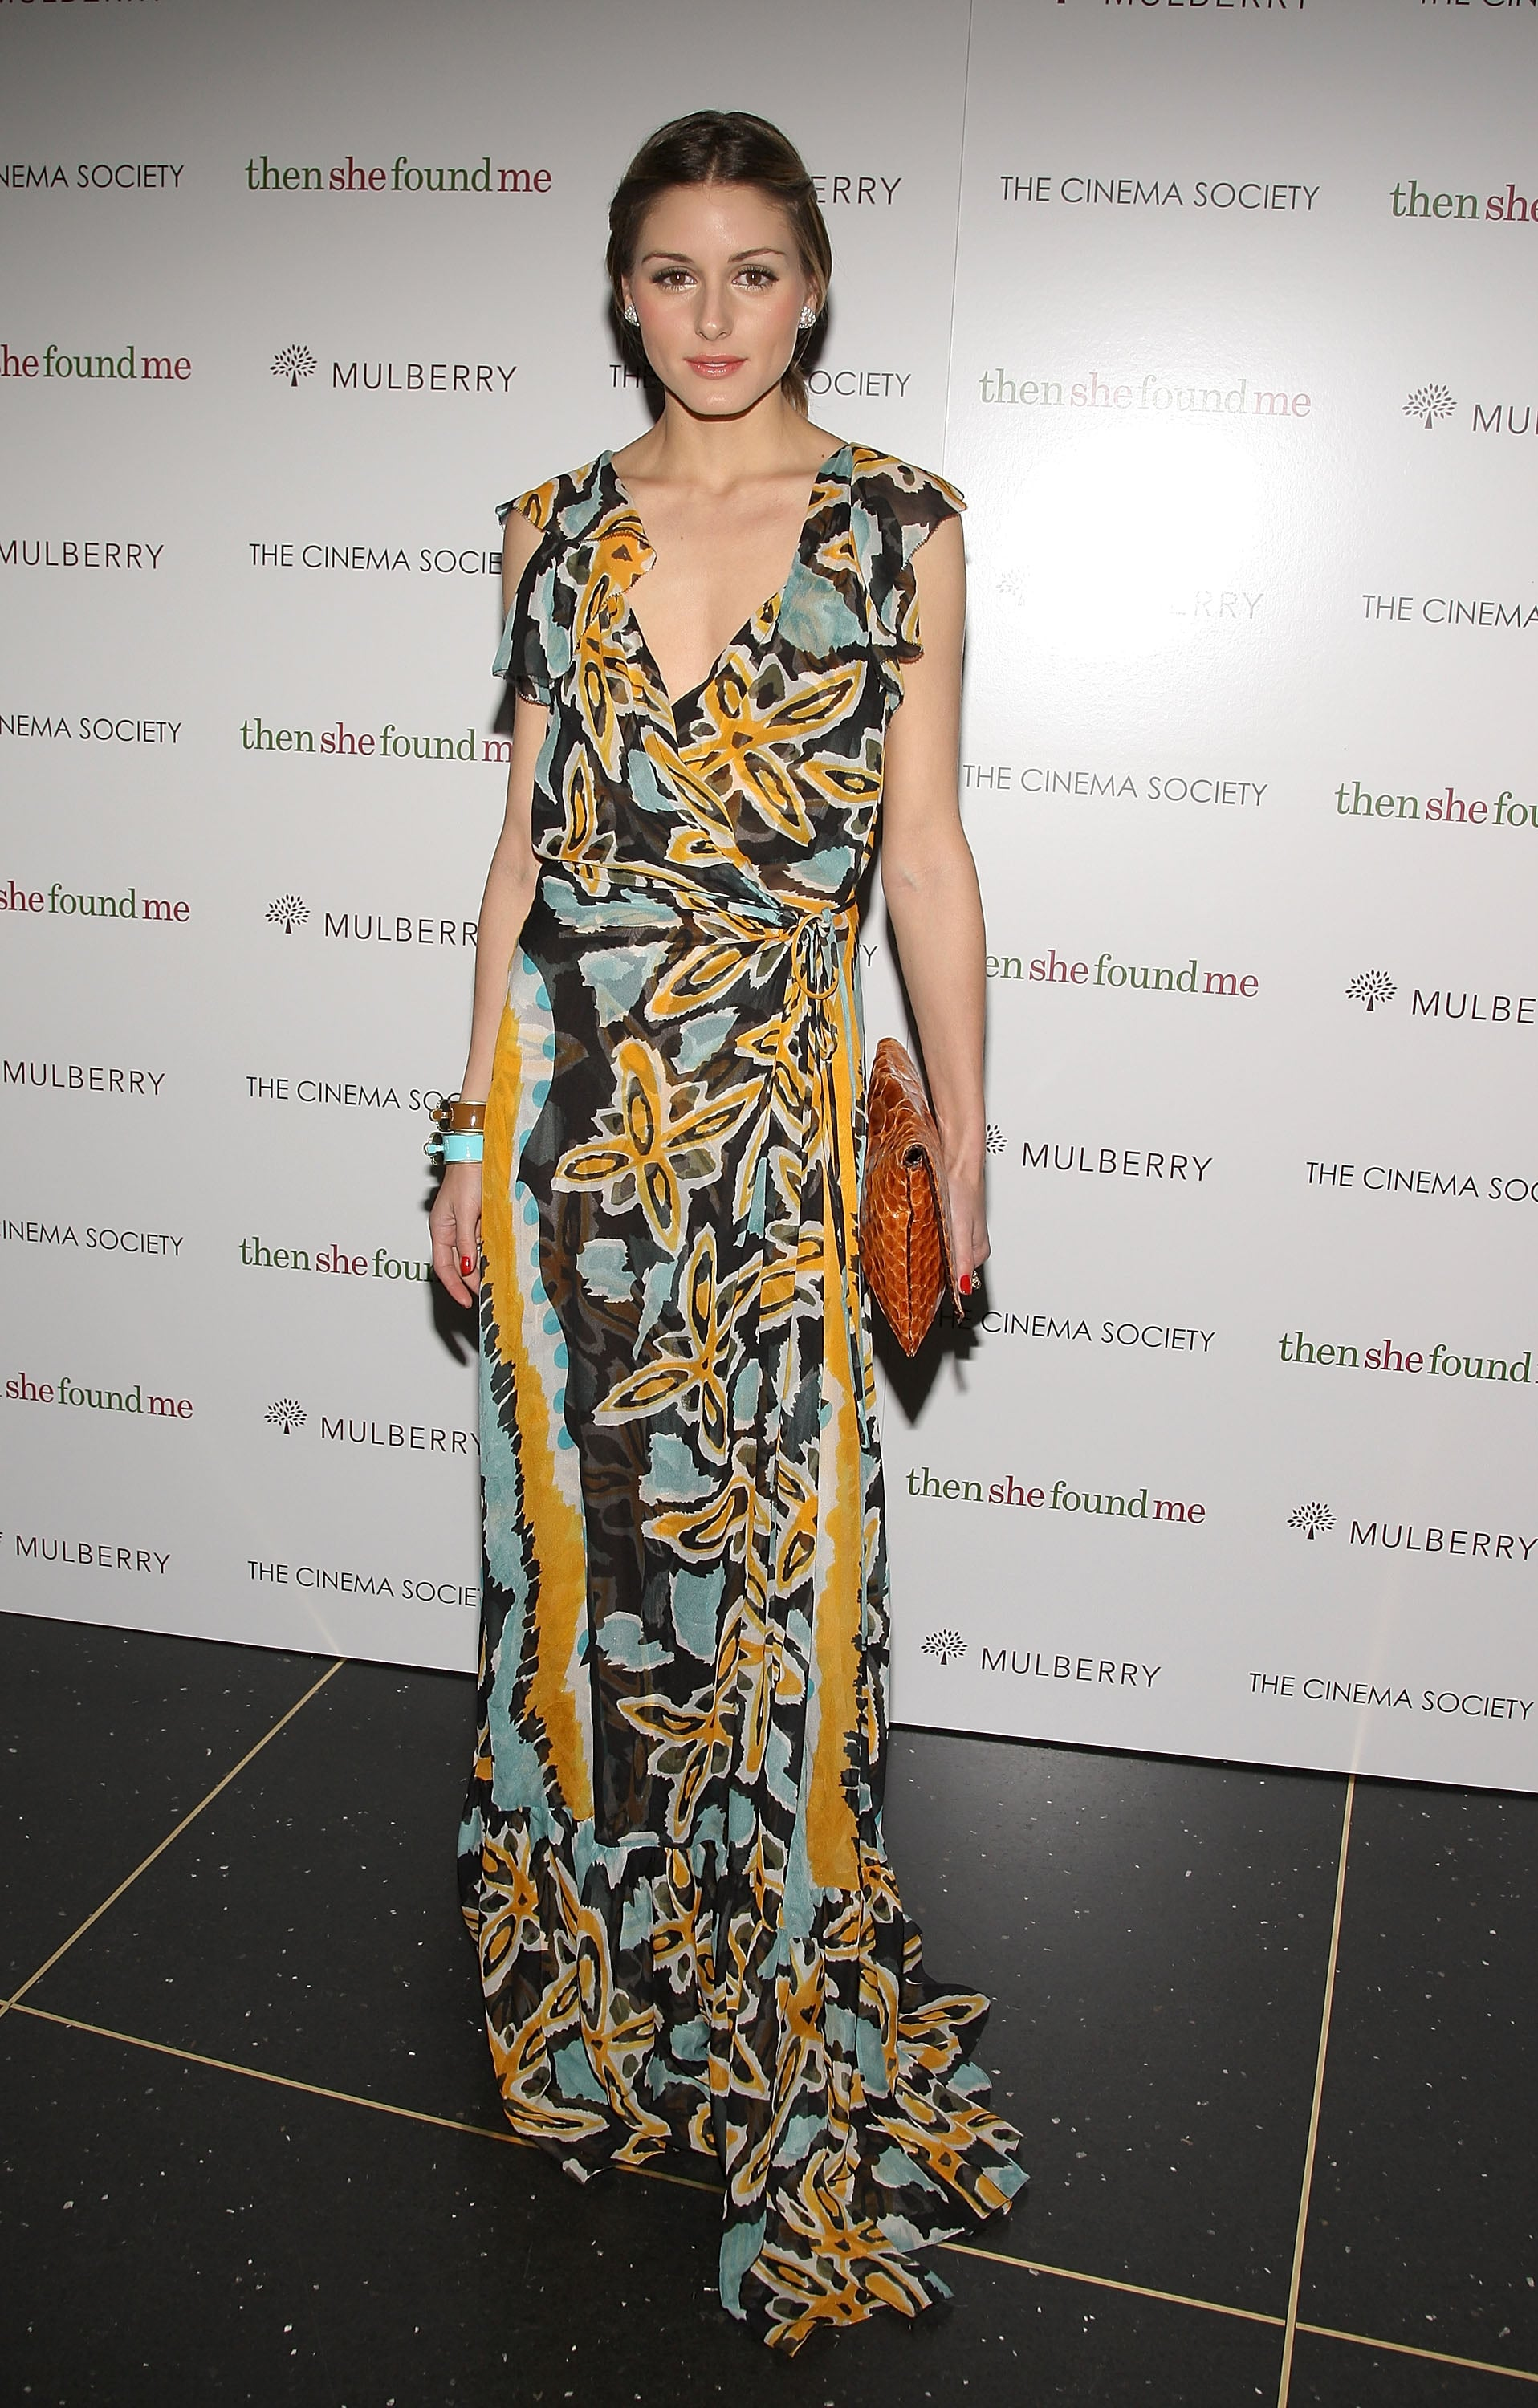 A gorgeous printed DVF for a New York film premiere in 2008.